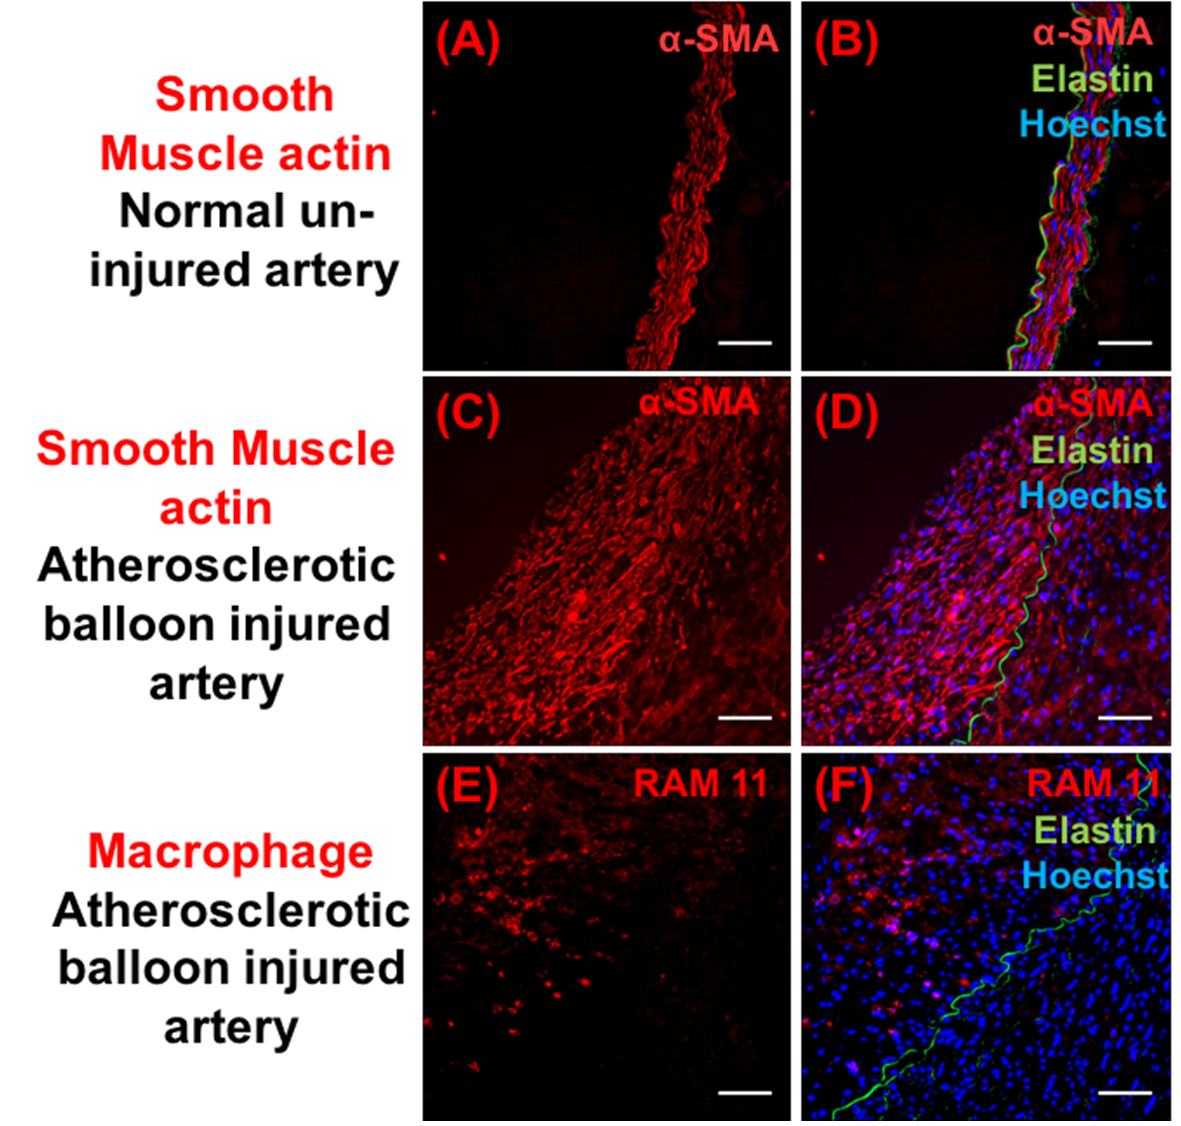 405a141a4483 The Rabbit Model of Accelerated Atherosclerosis  A Methodological ...